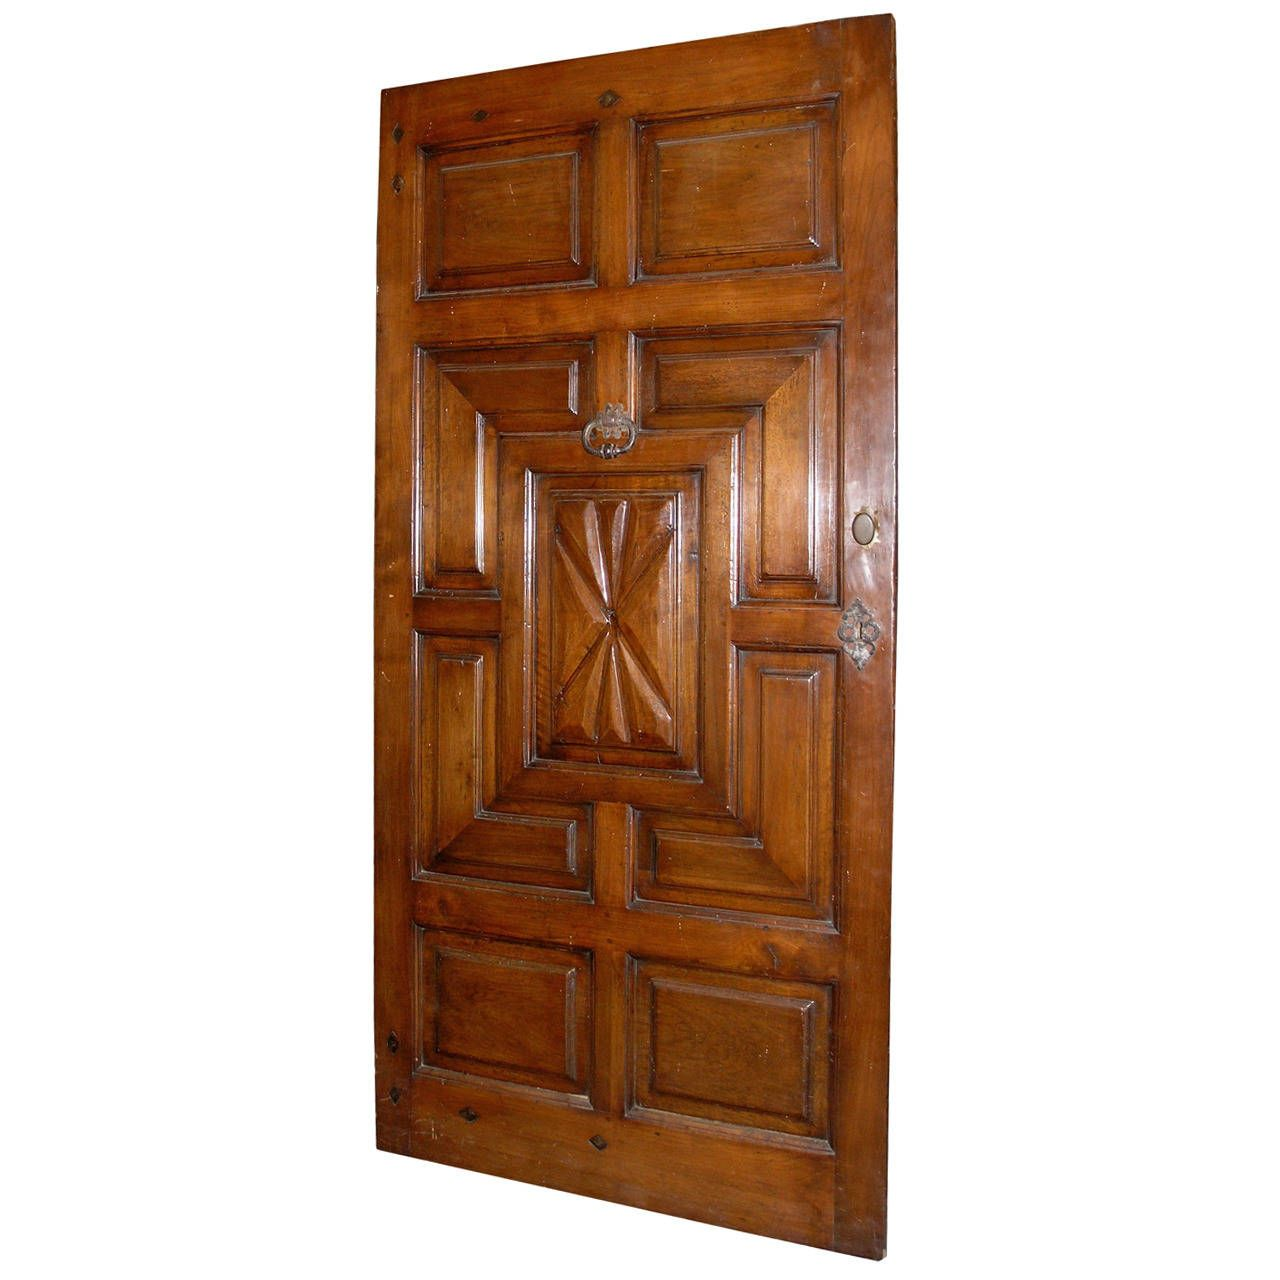 Antique Walnut Entry Door | From a unique collection of antique and modern doors and gates at https://www.1stdibs.com/furniture/building-garden/doors-gates/